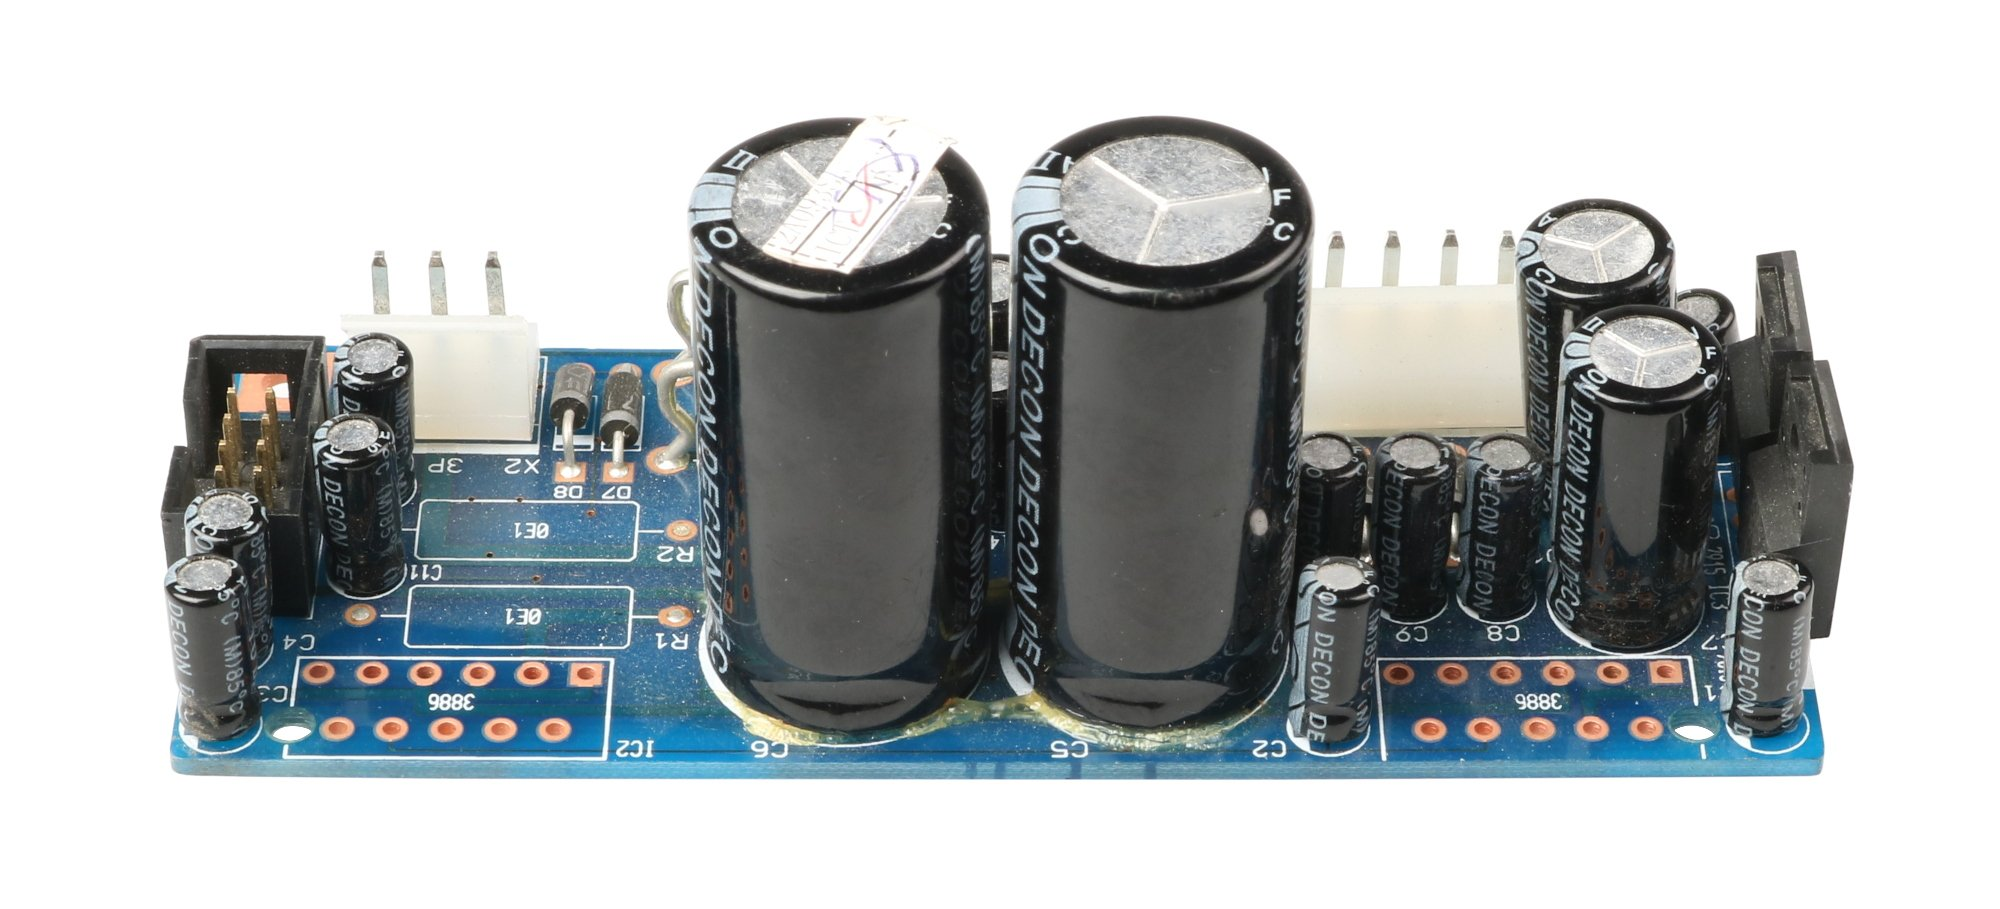 Power Amp PCB for LX1200H